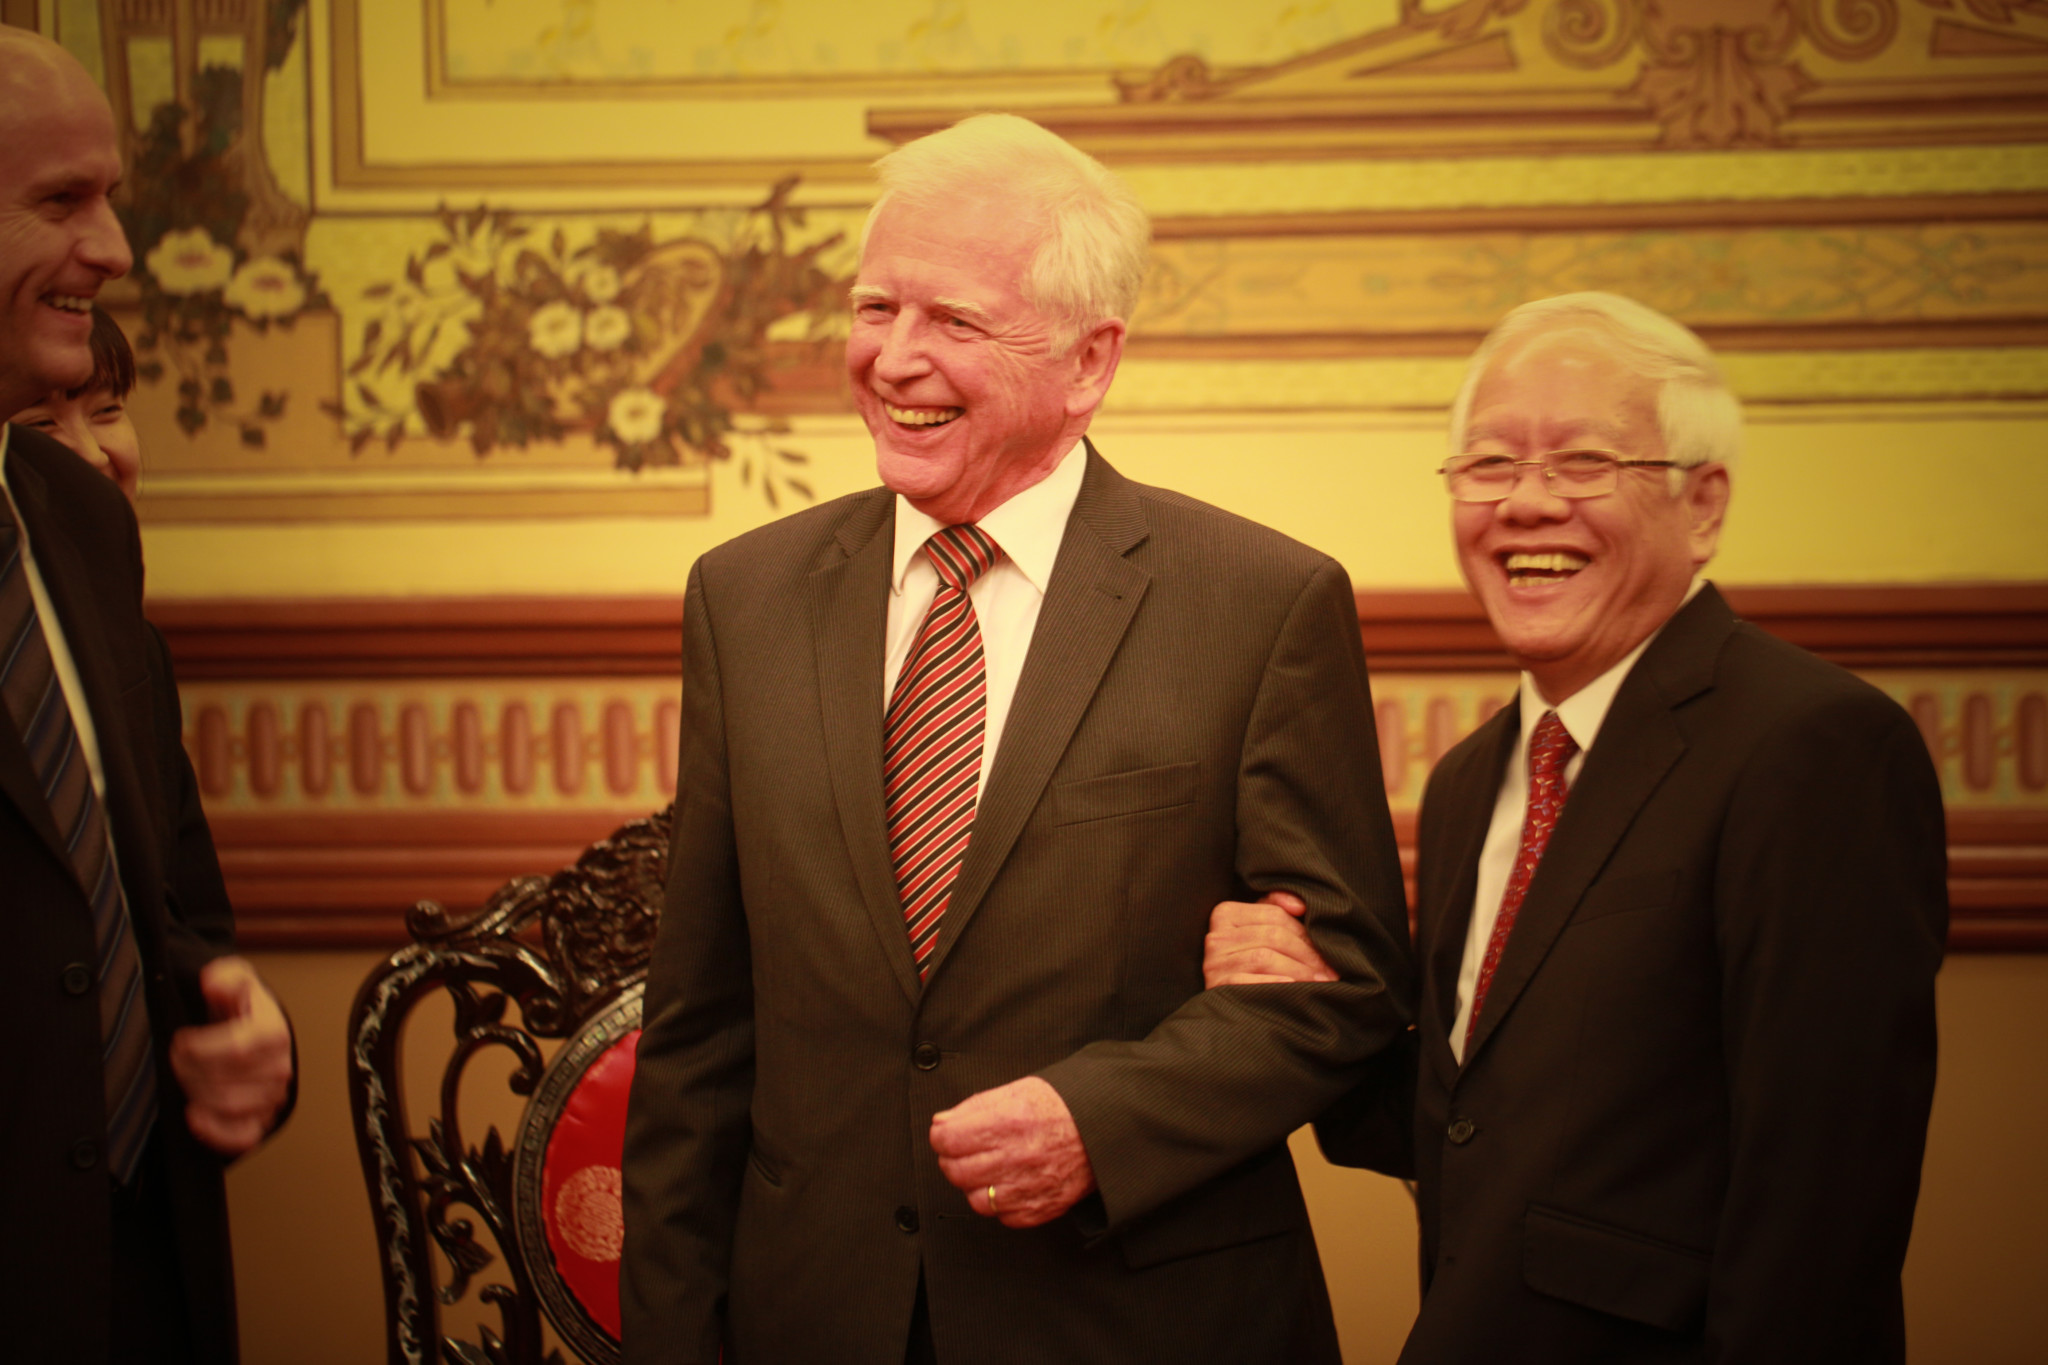 Medicine Nobel Laureate Prof Harald zur Hausen with HE Le Hoang Quan, Chairman of the Ho Chi Minh City People's Committee